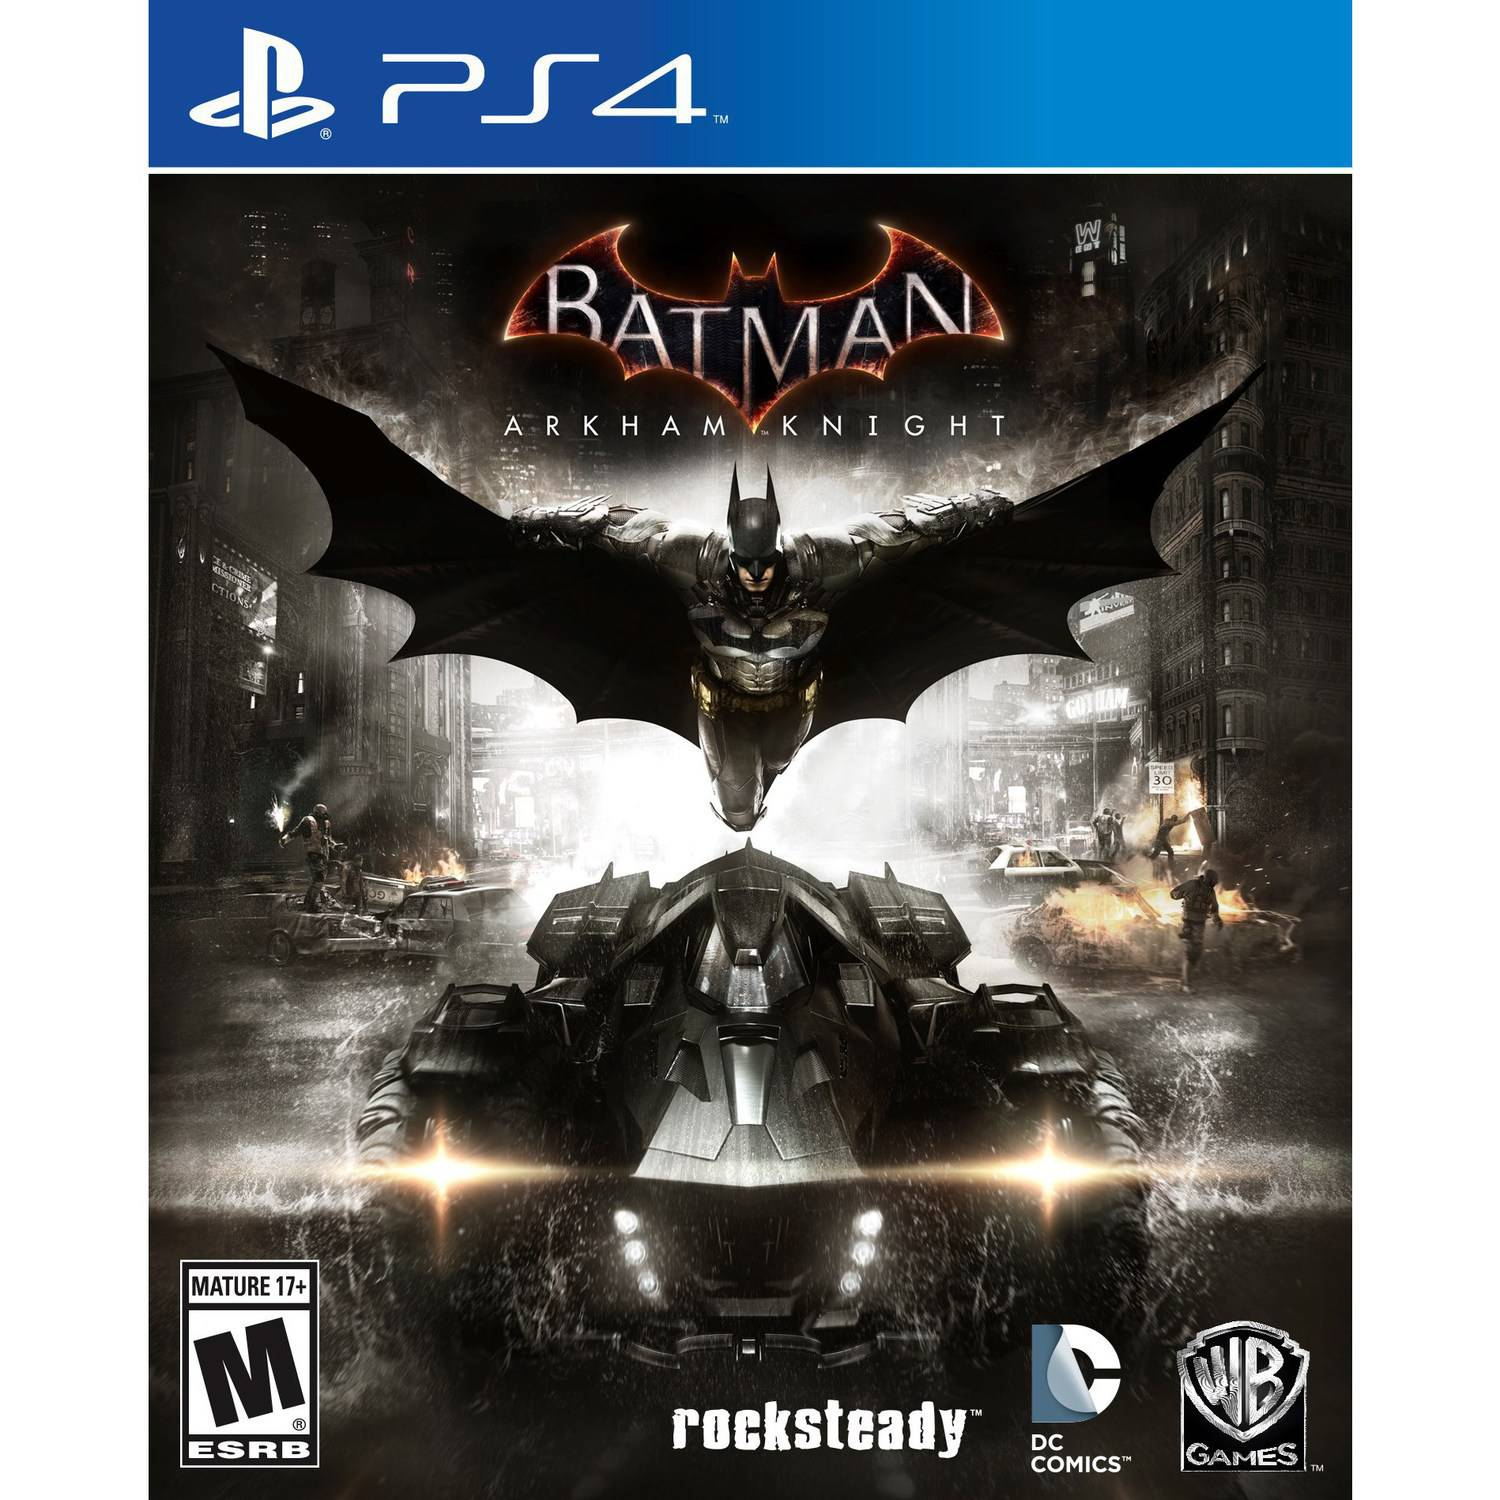 Batman Arkham Knight (Playstation 4) Used by Rocksteady Studios Ltd.